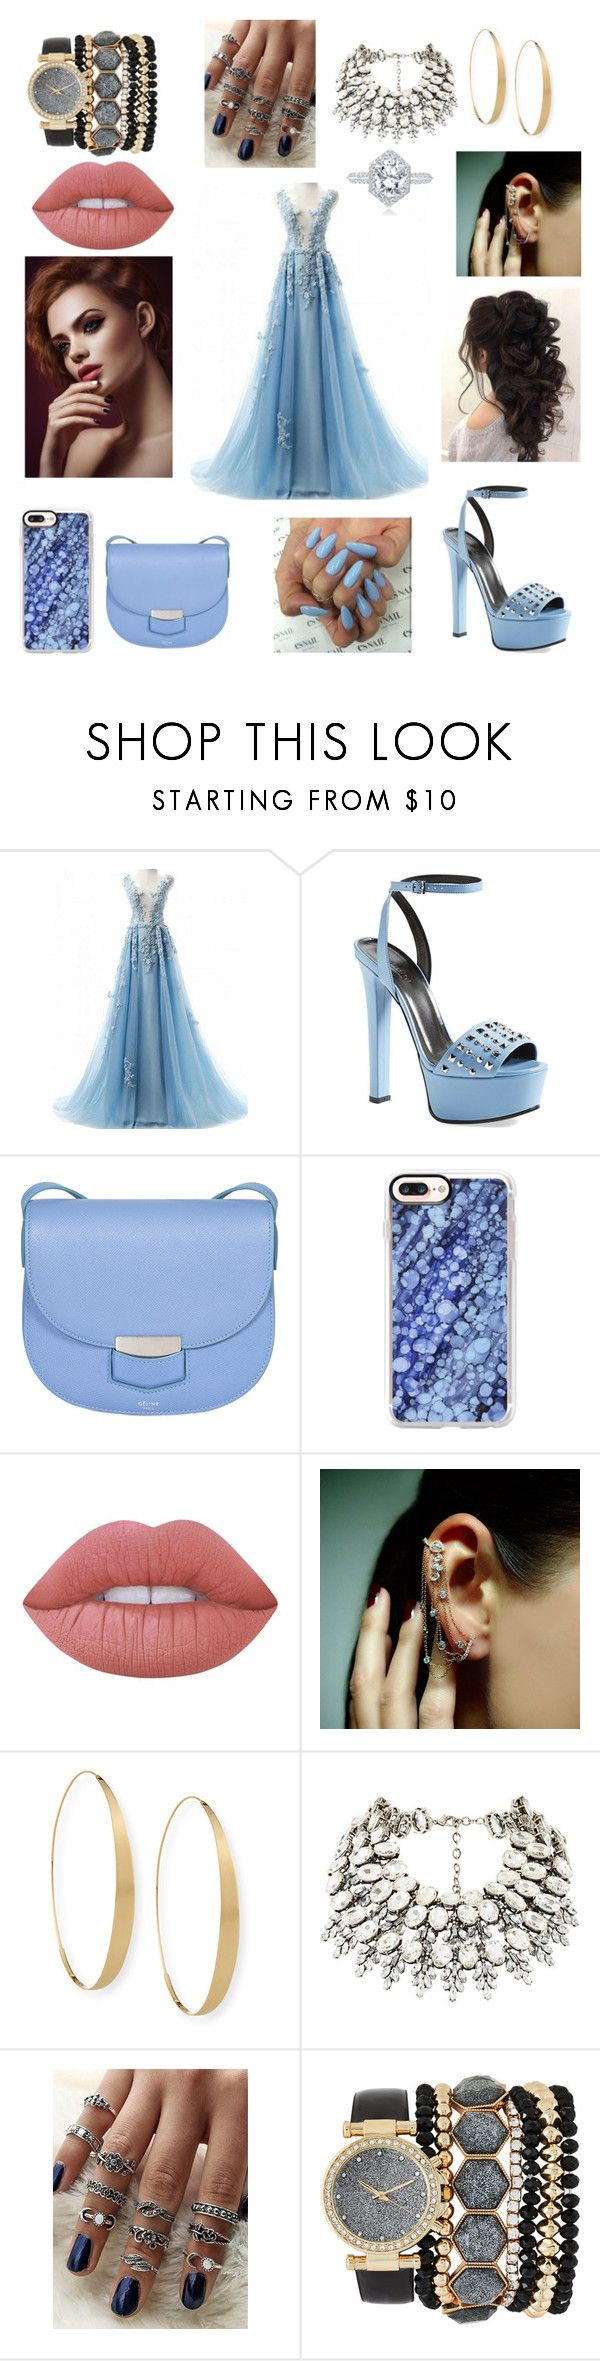 """bright blue"" by ellie-nique on Polyvore featuring Gucci, CÉLINE, Casetify, Lime Crime, Mike Saatji, Lana, Jessica Carlyle and polyvorefashion"